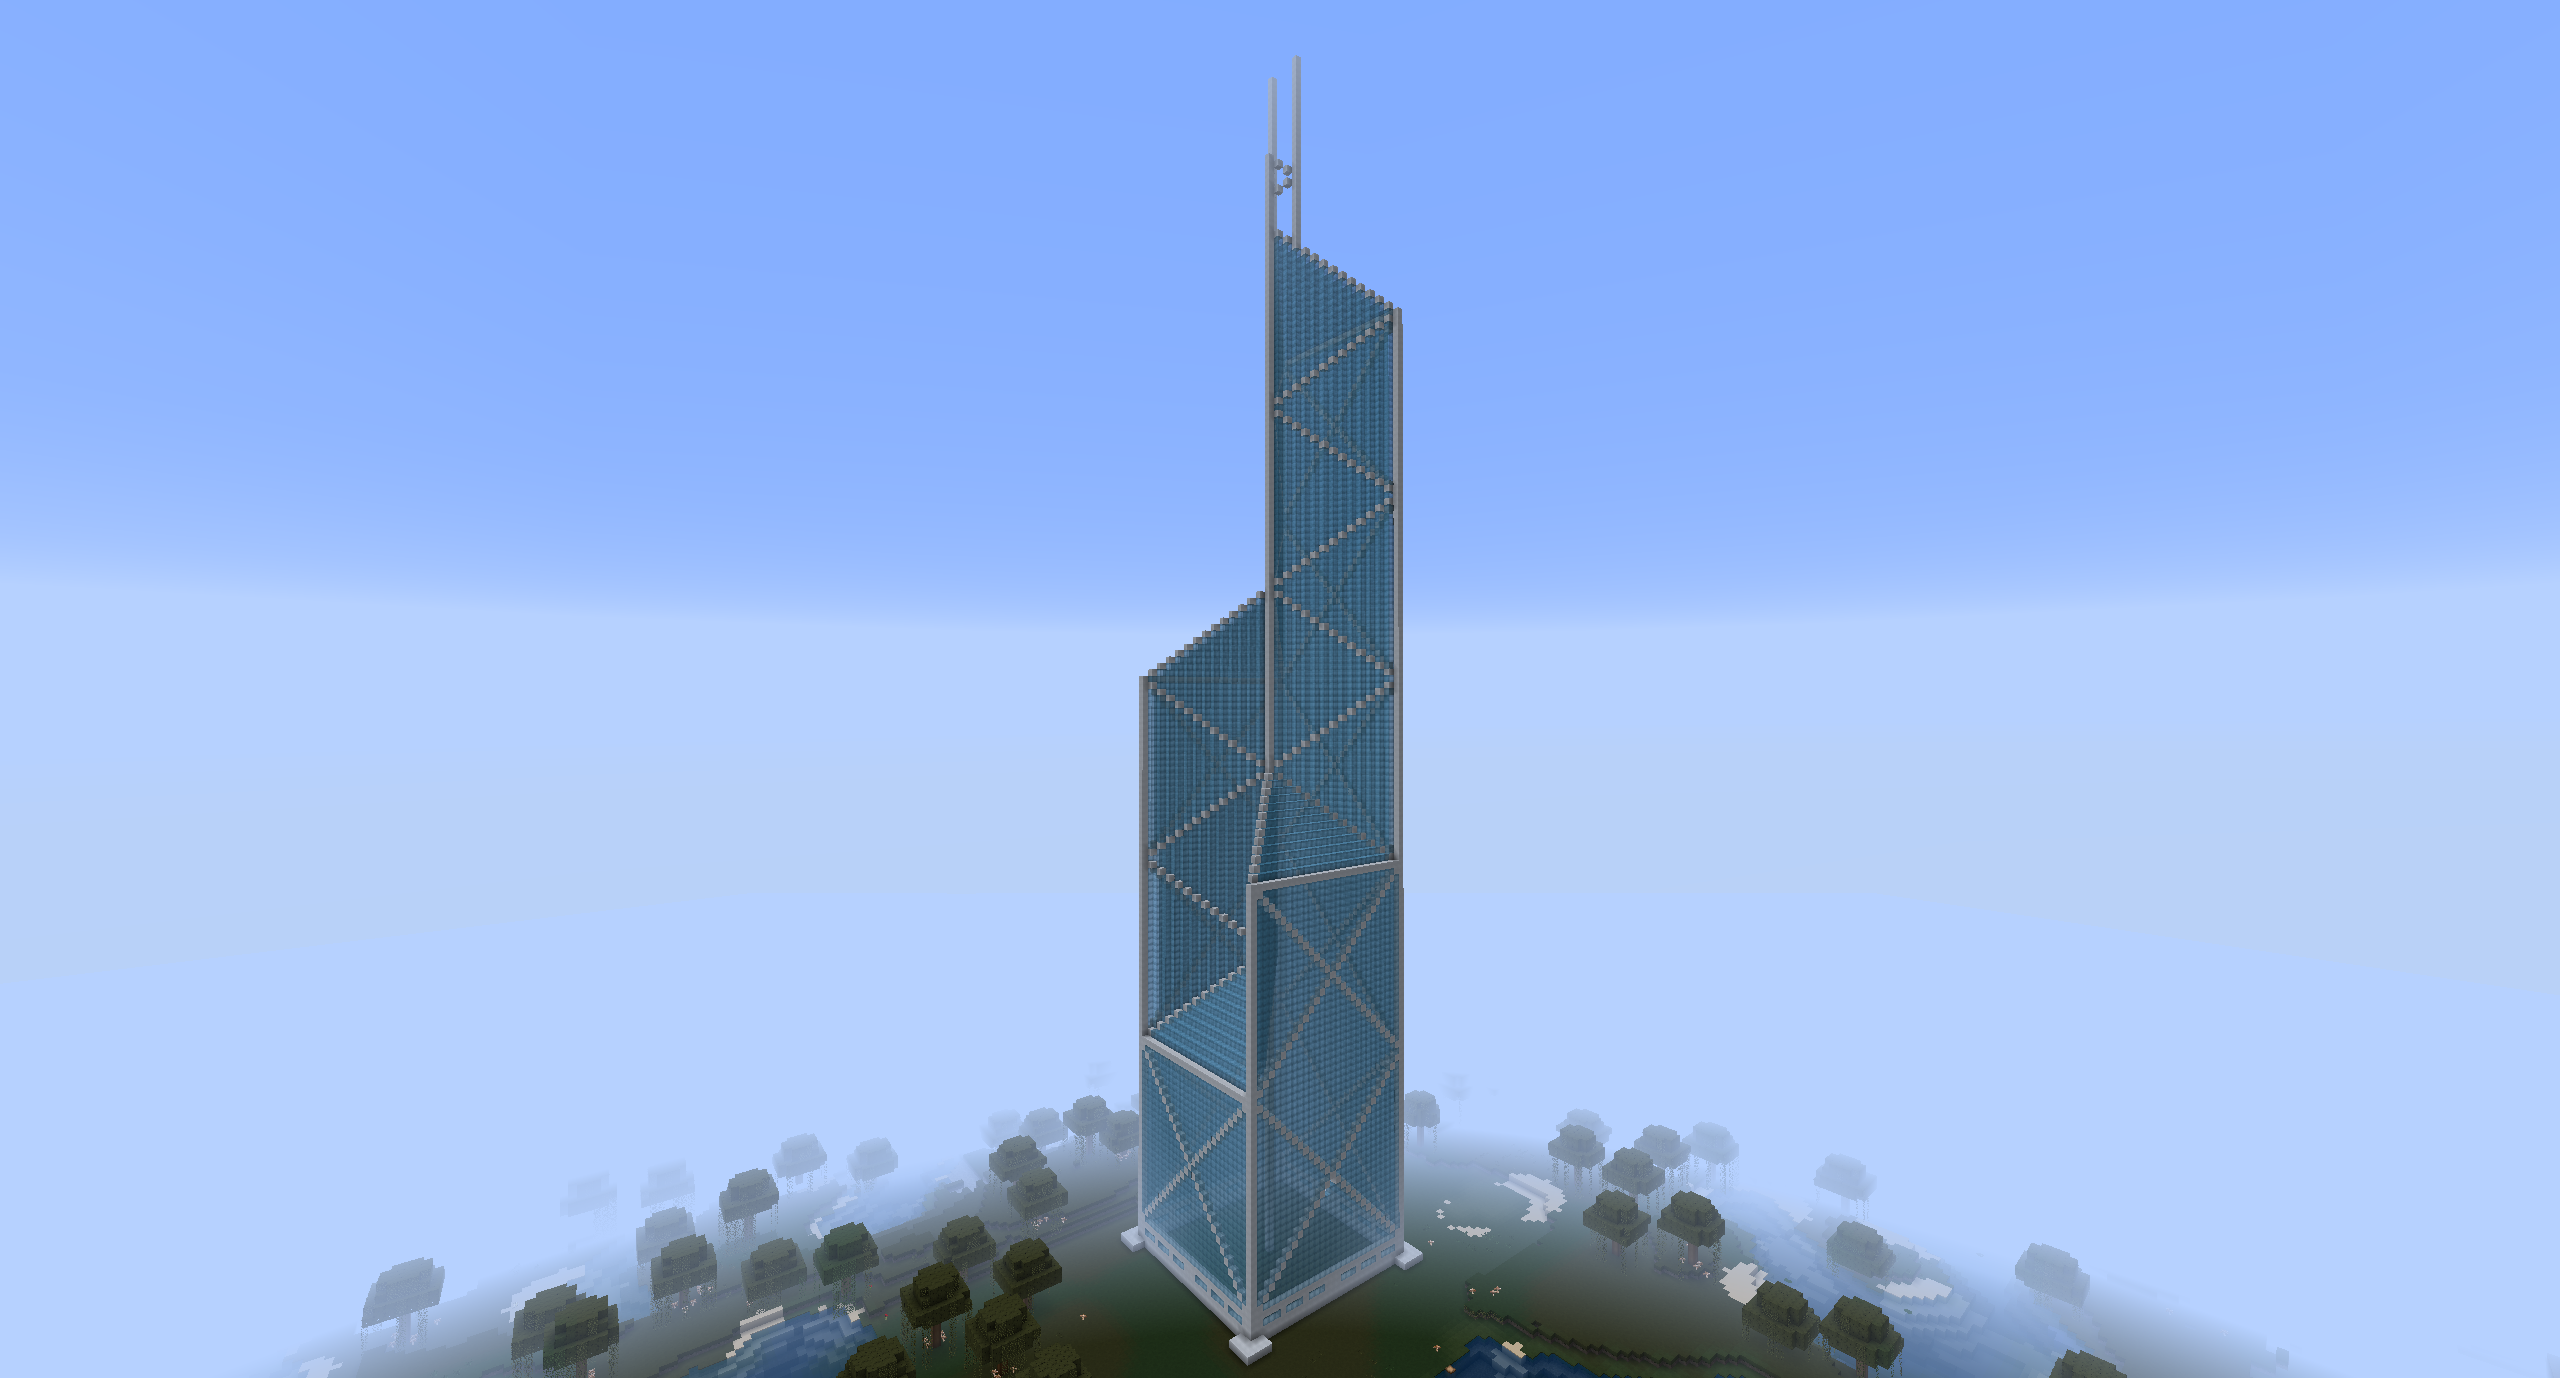 Minecraft Bank Of China Tower By MinecraftArchitect90 On